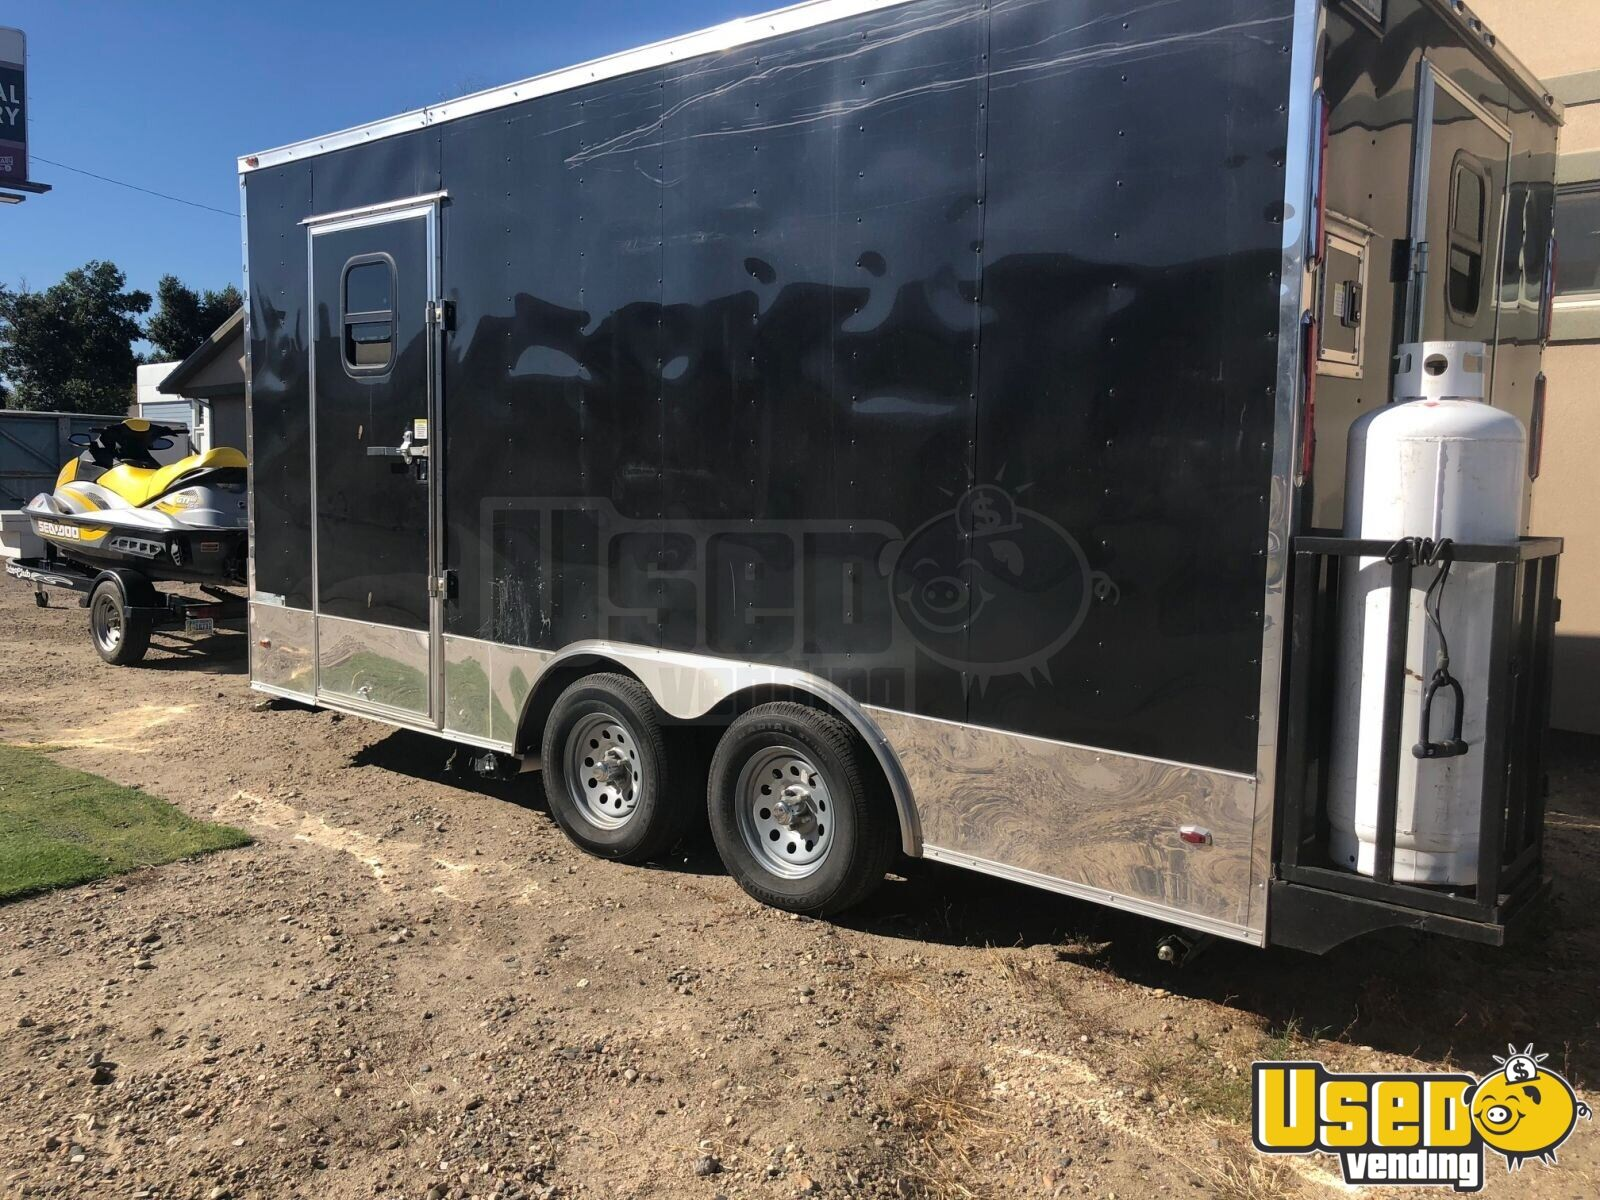 2017 Freedom Trailer Kitchen Food Trailer Air Conditioning Wyoming for Sale - 2